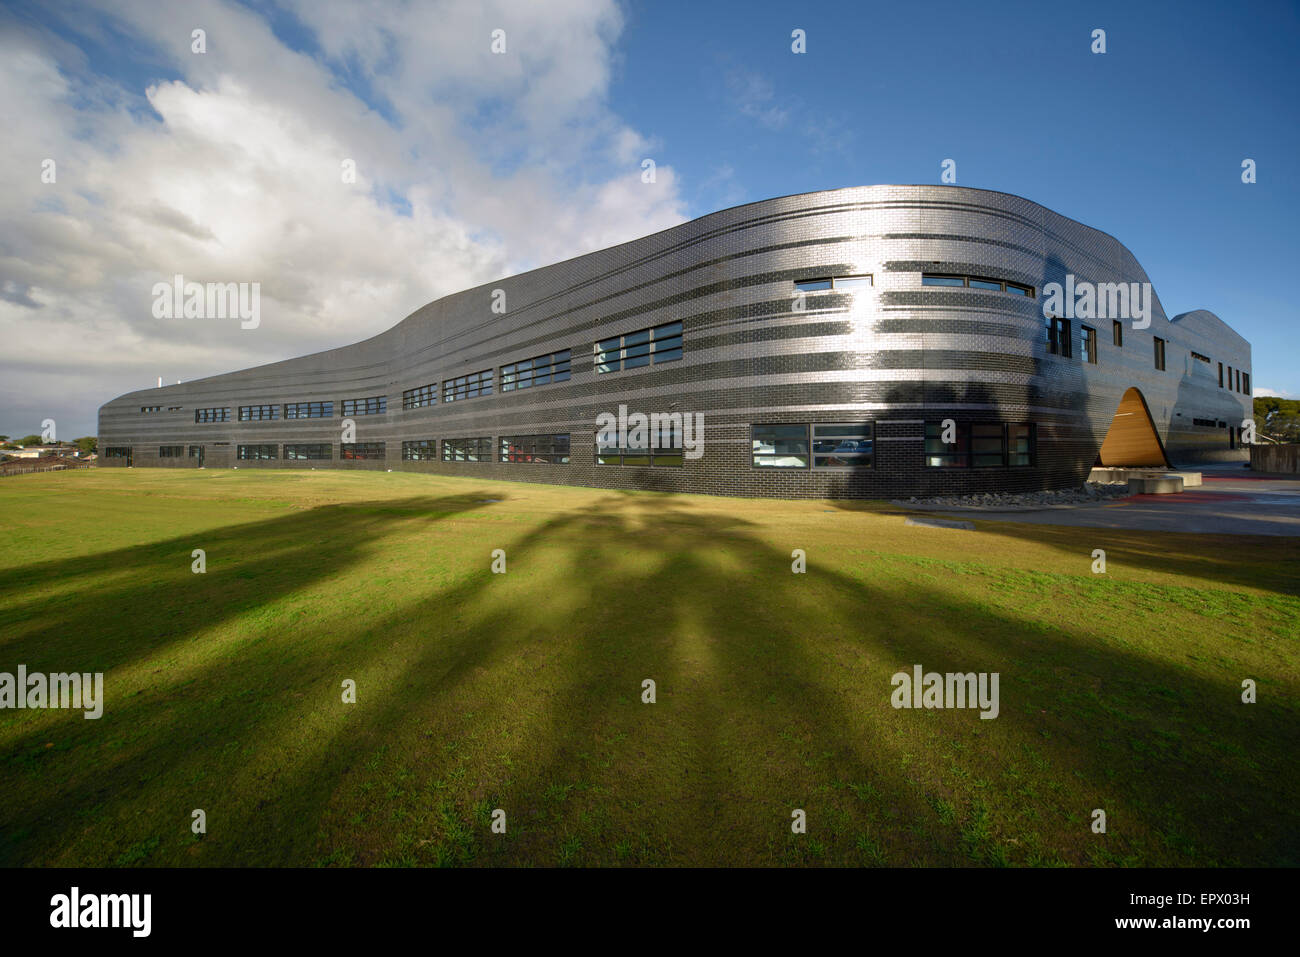 Metallic exterior of Penleigh and Essendon Grammar School, Essendon, Melbourne, Australia. - Stock Image